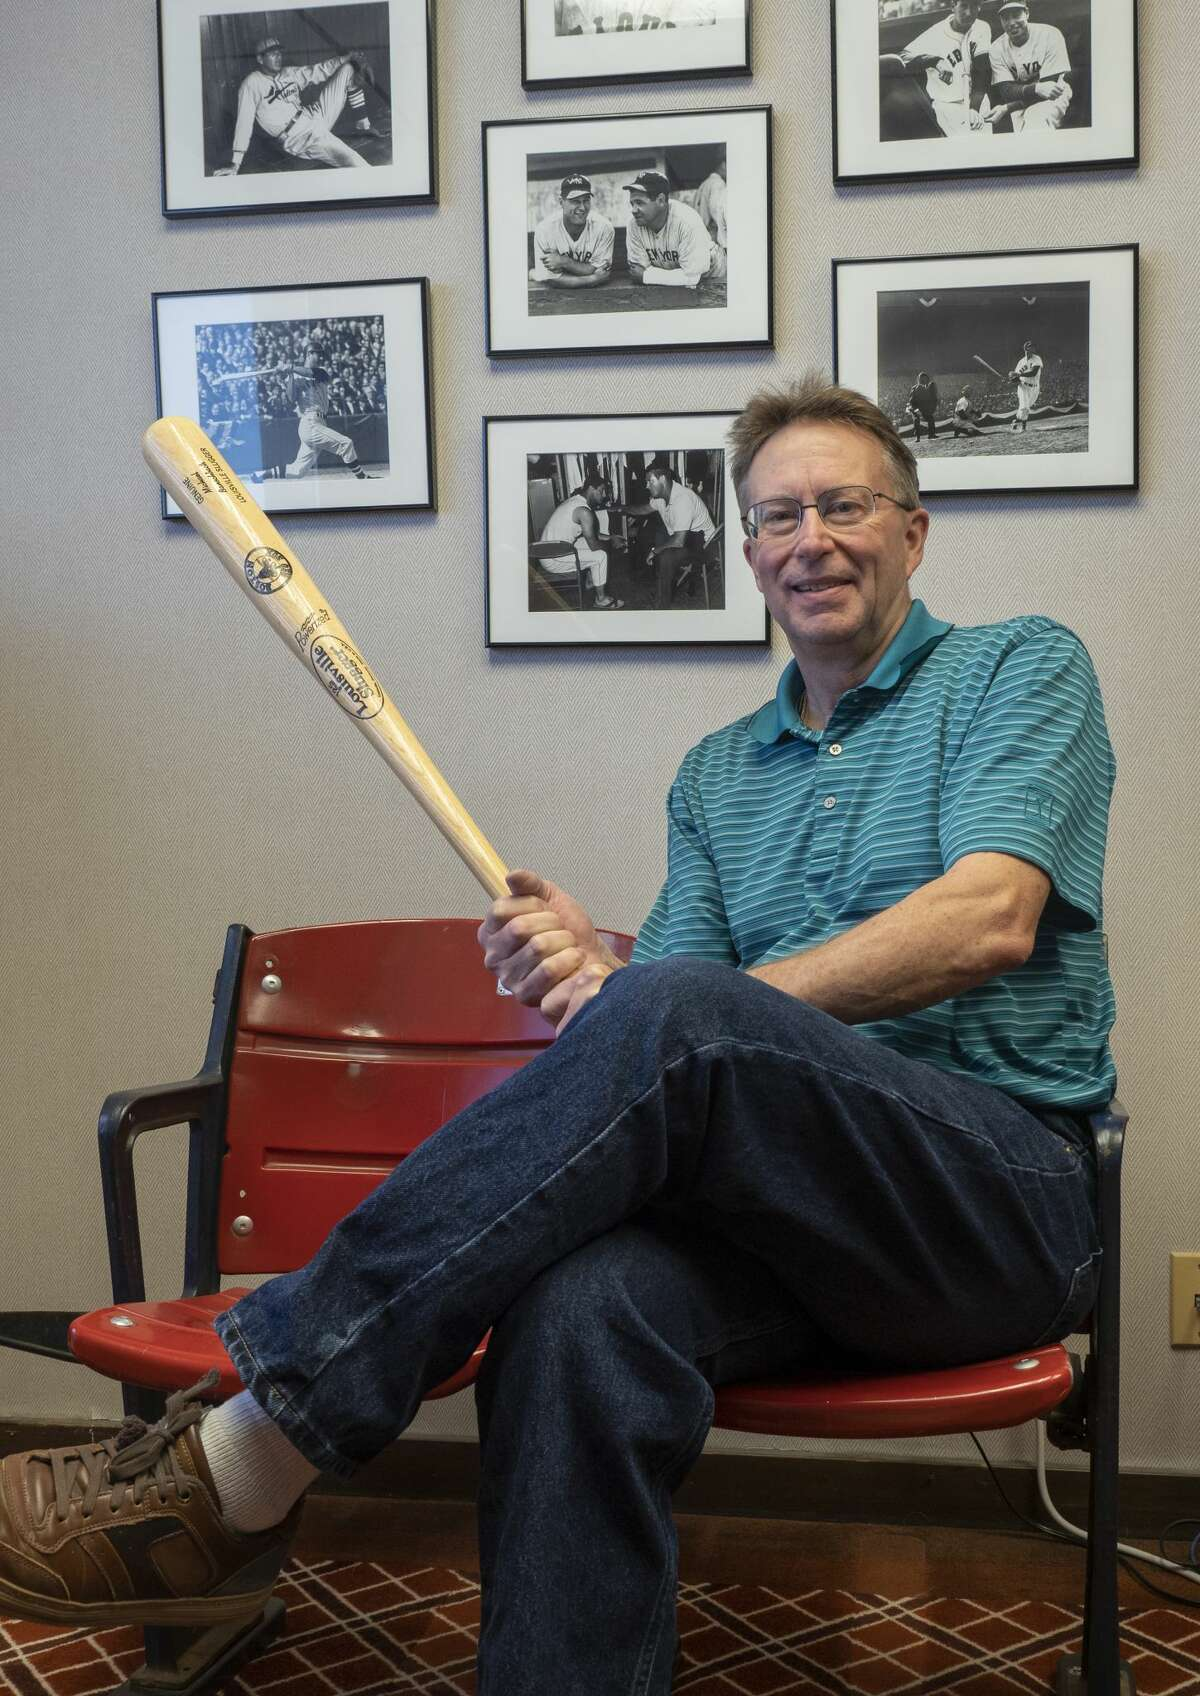 Michael Banschbach an avid baseball collector, sits in his Fenway Park bleacher seats in this picture from January 12.